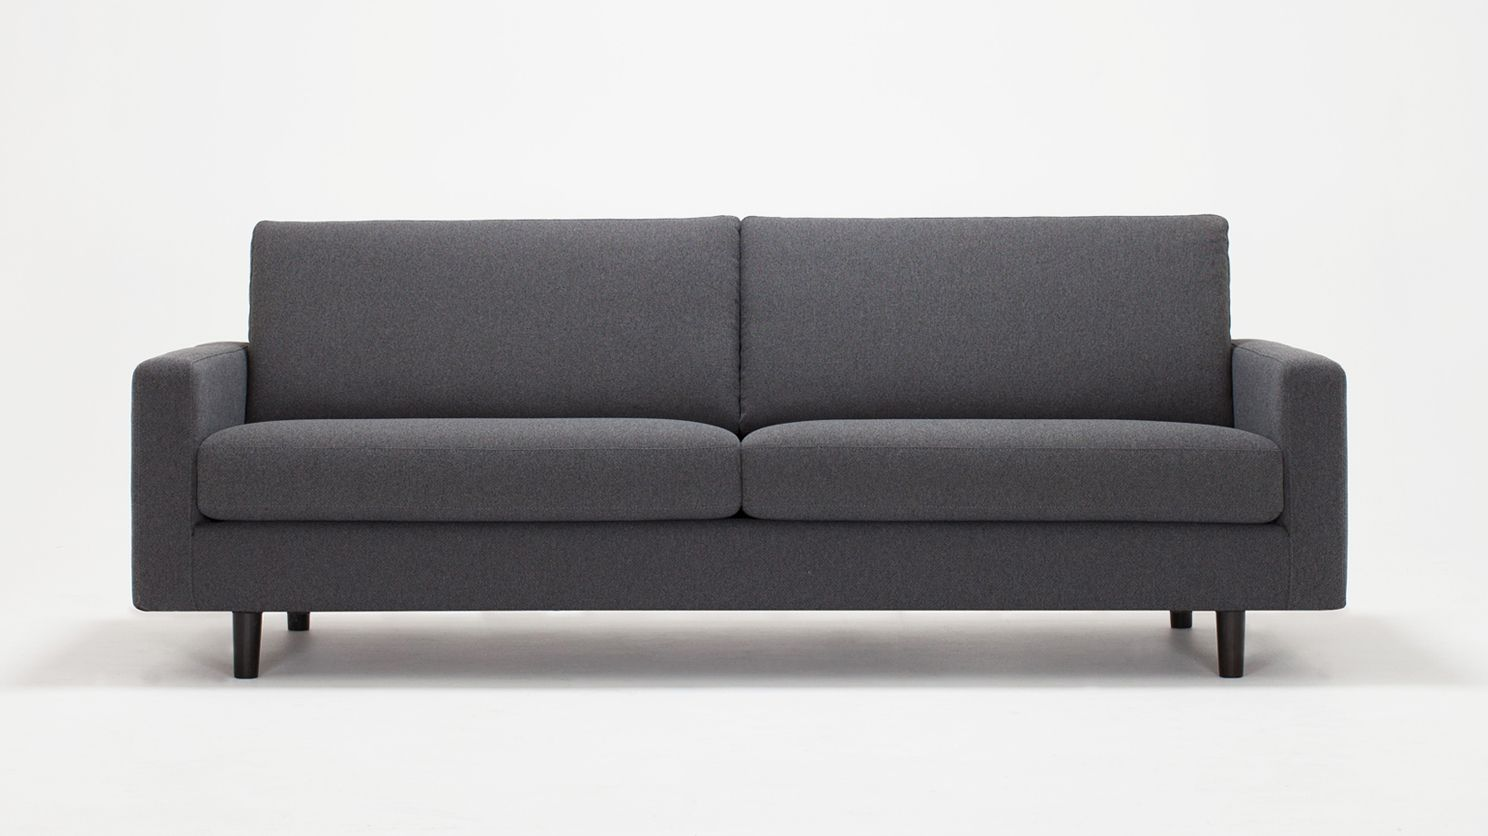 Eq3 Oskar 86 Quot Sofa With Removable Cover New At Hausful